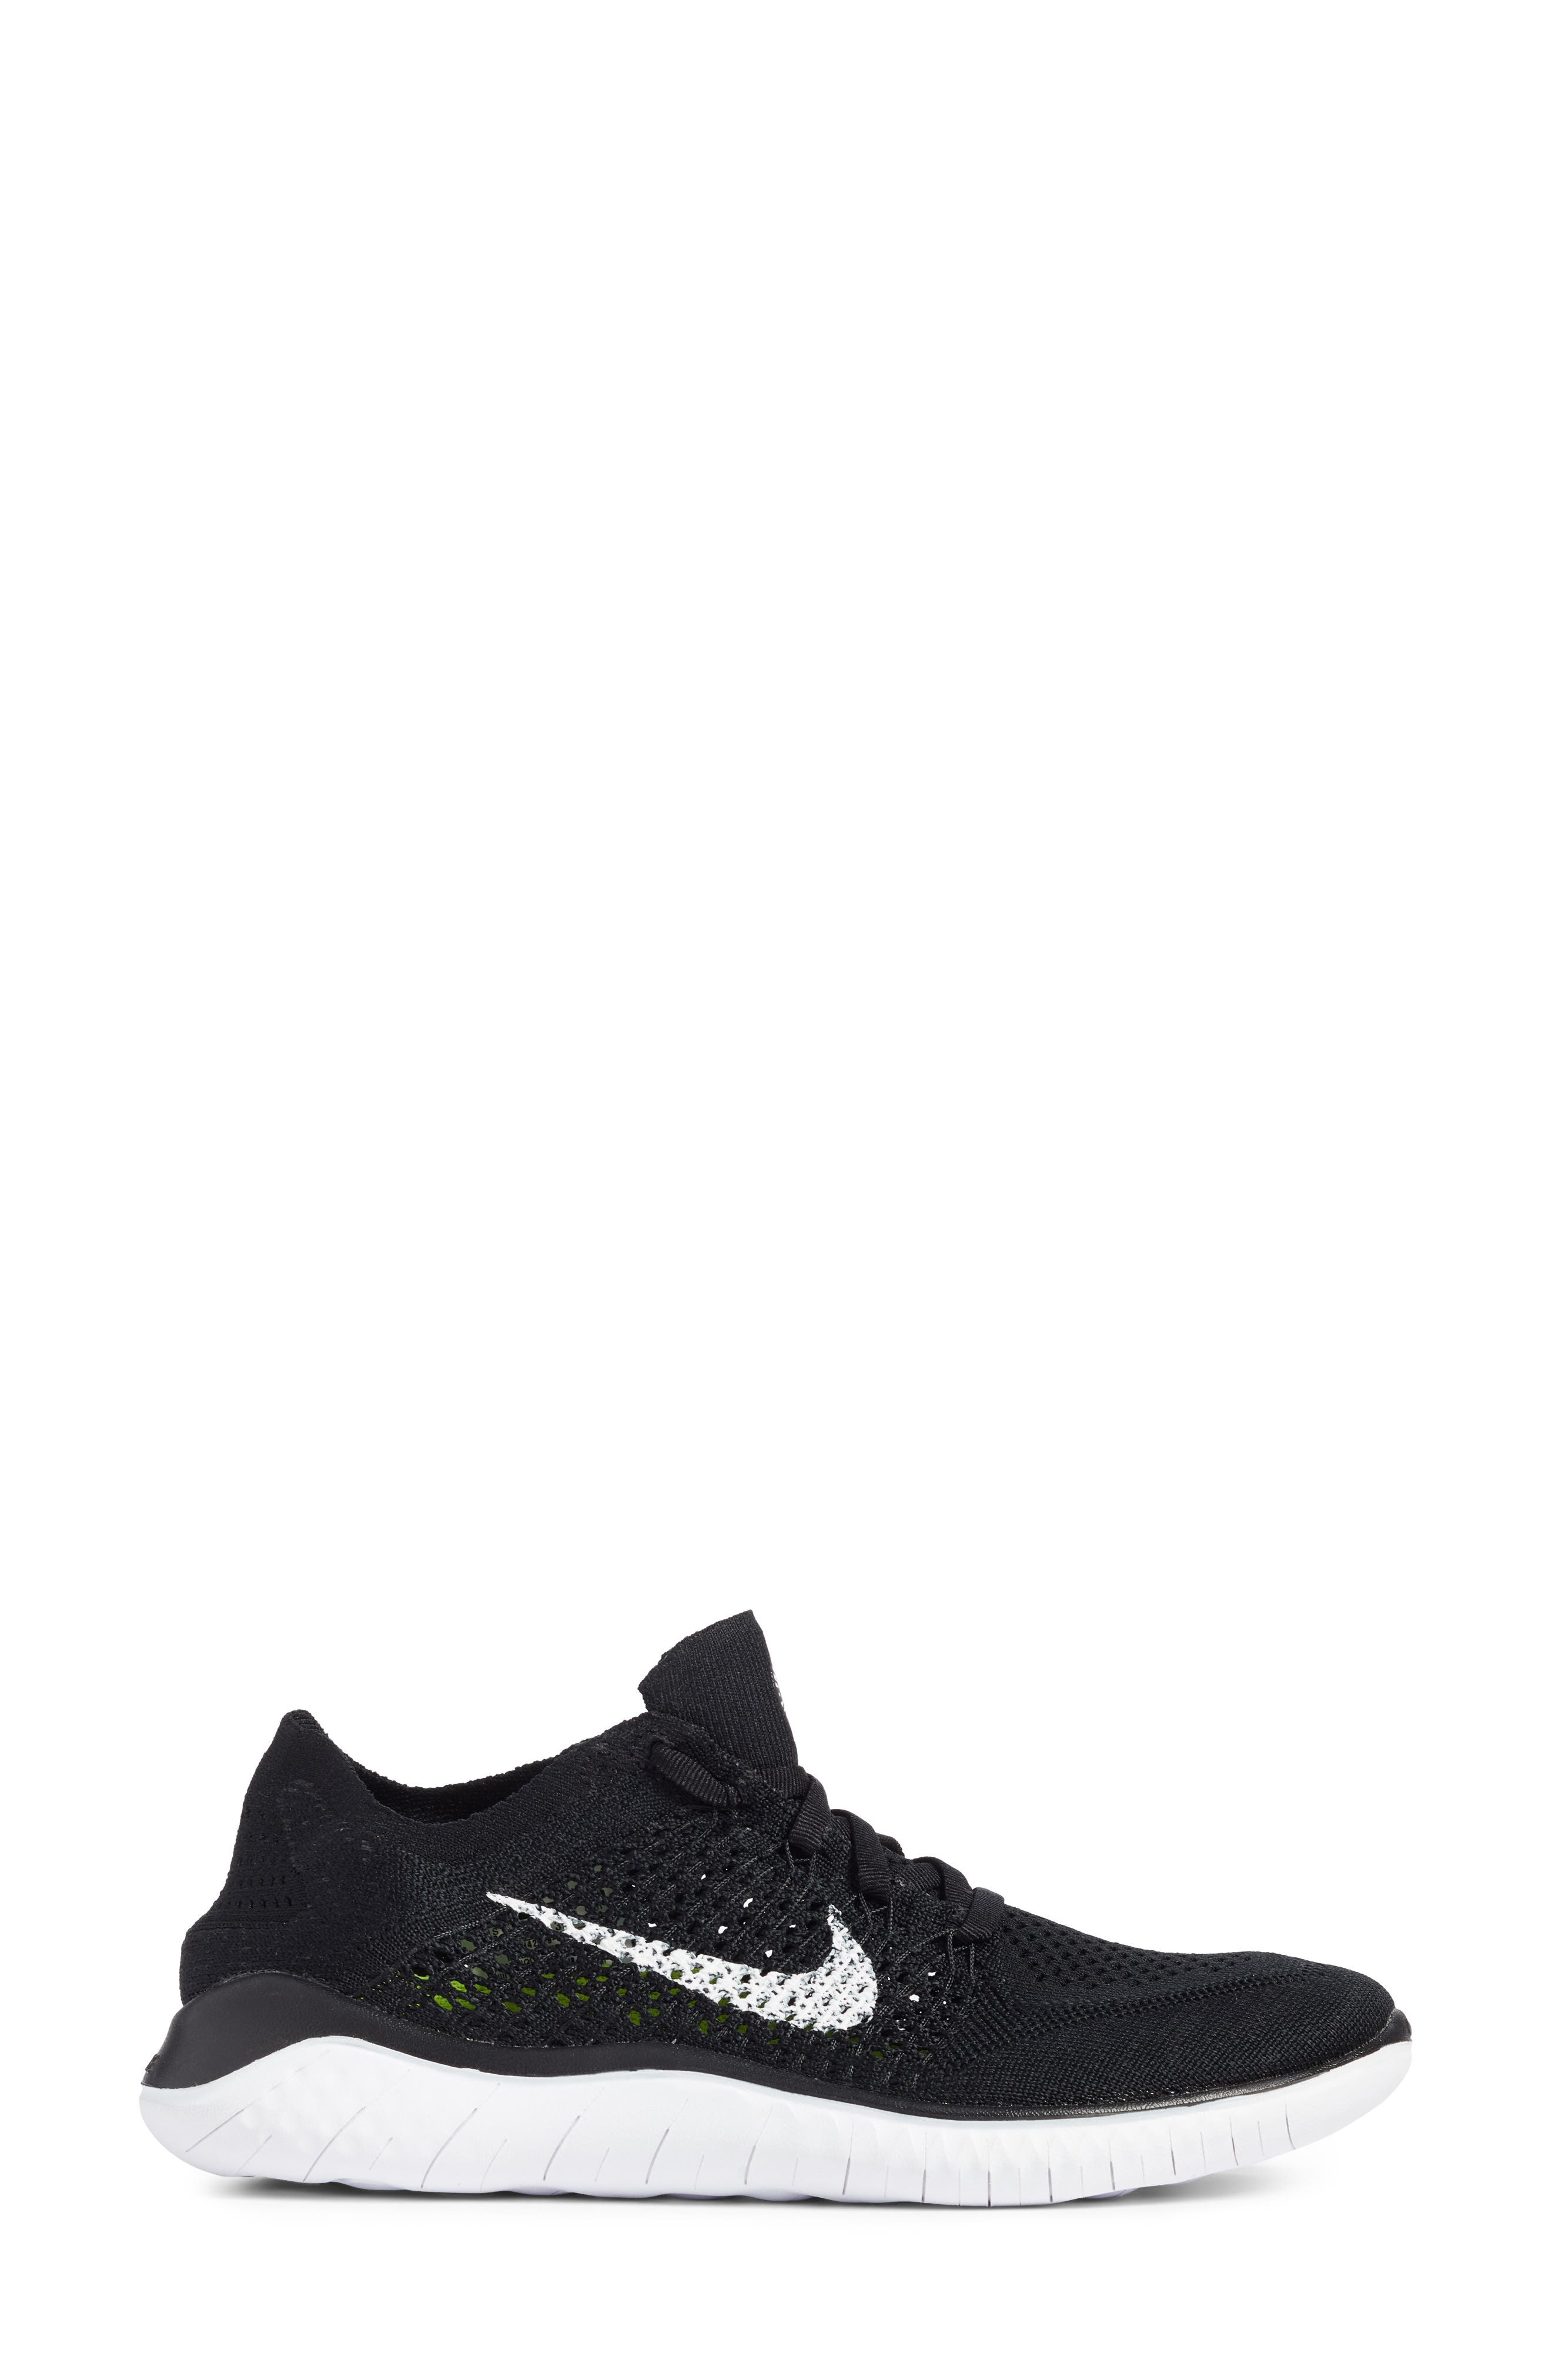 Free RN Flyknit 2018 Running Shoe,                             Alternate thumbnail 26, color,